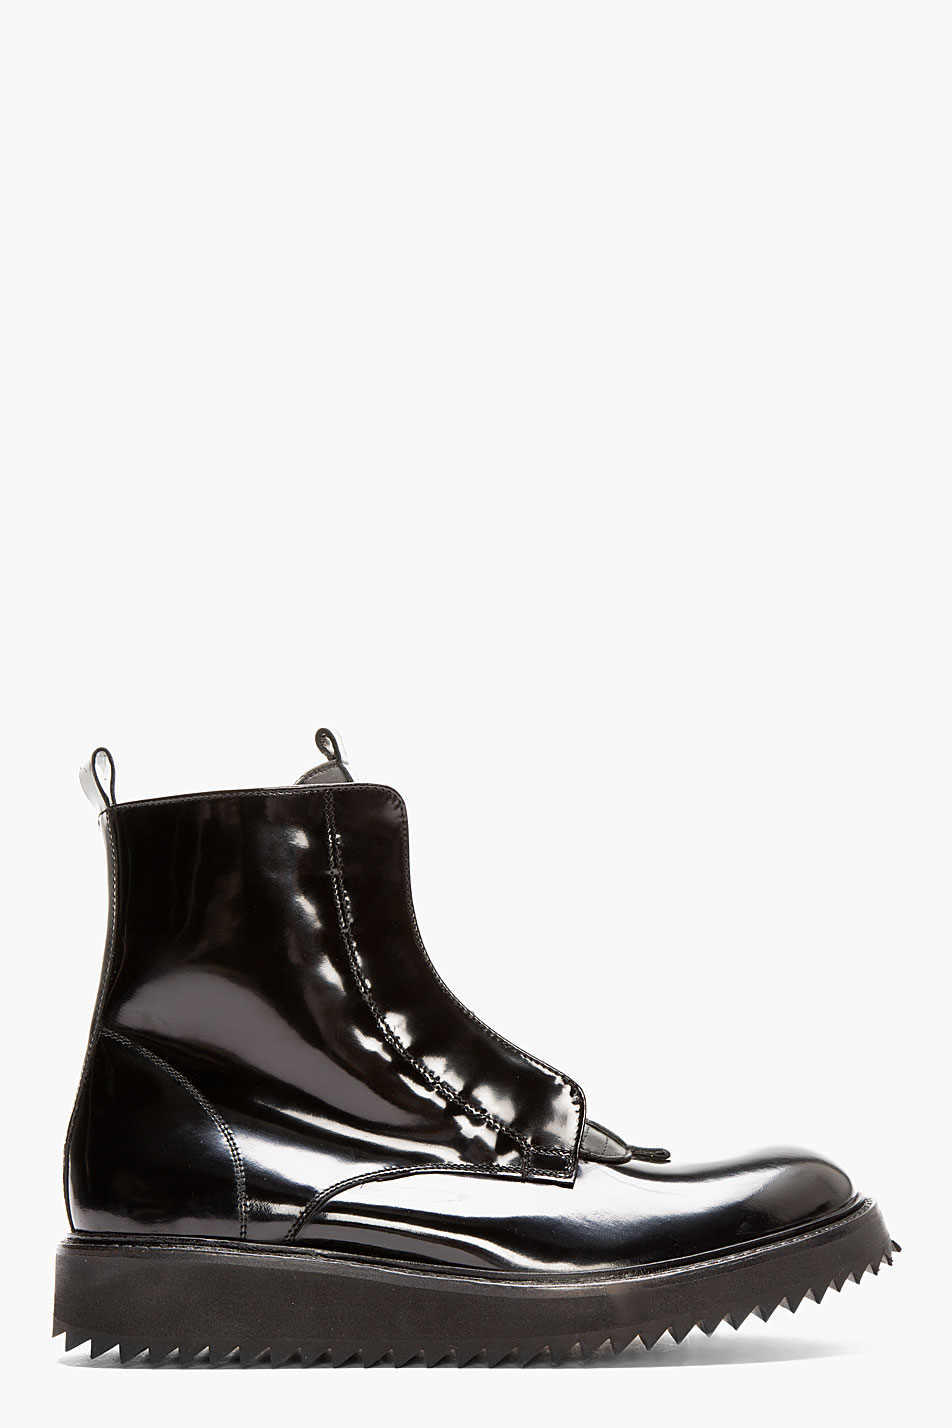 damir doma black patent leather fusco boots in black for